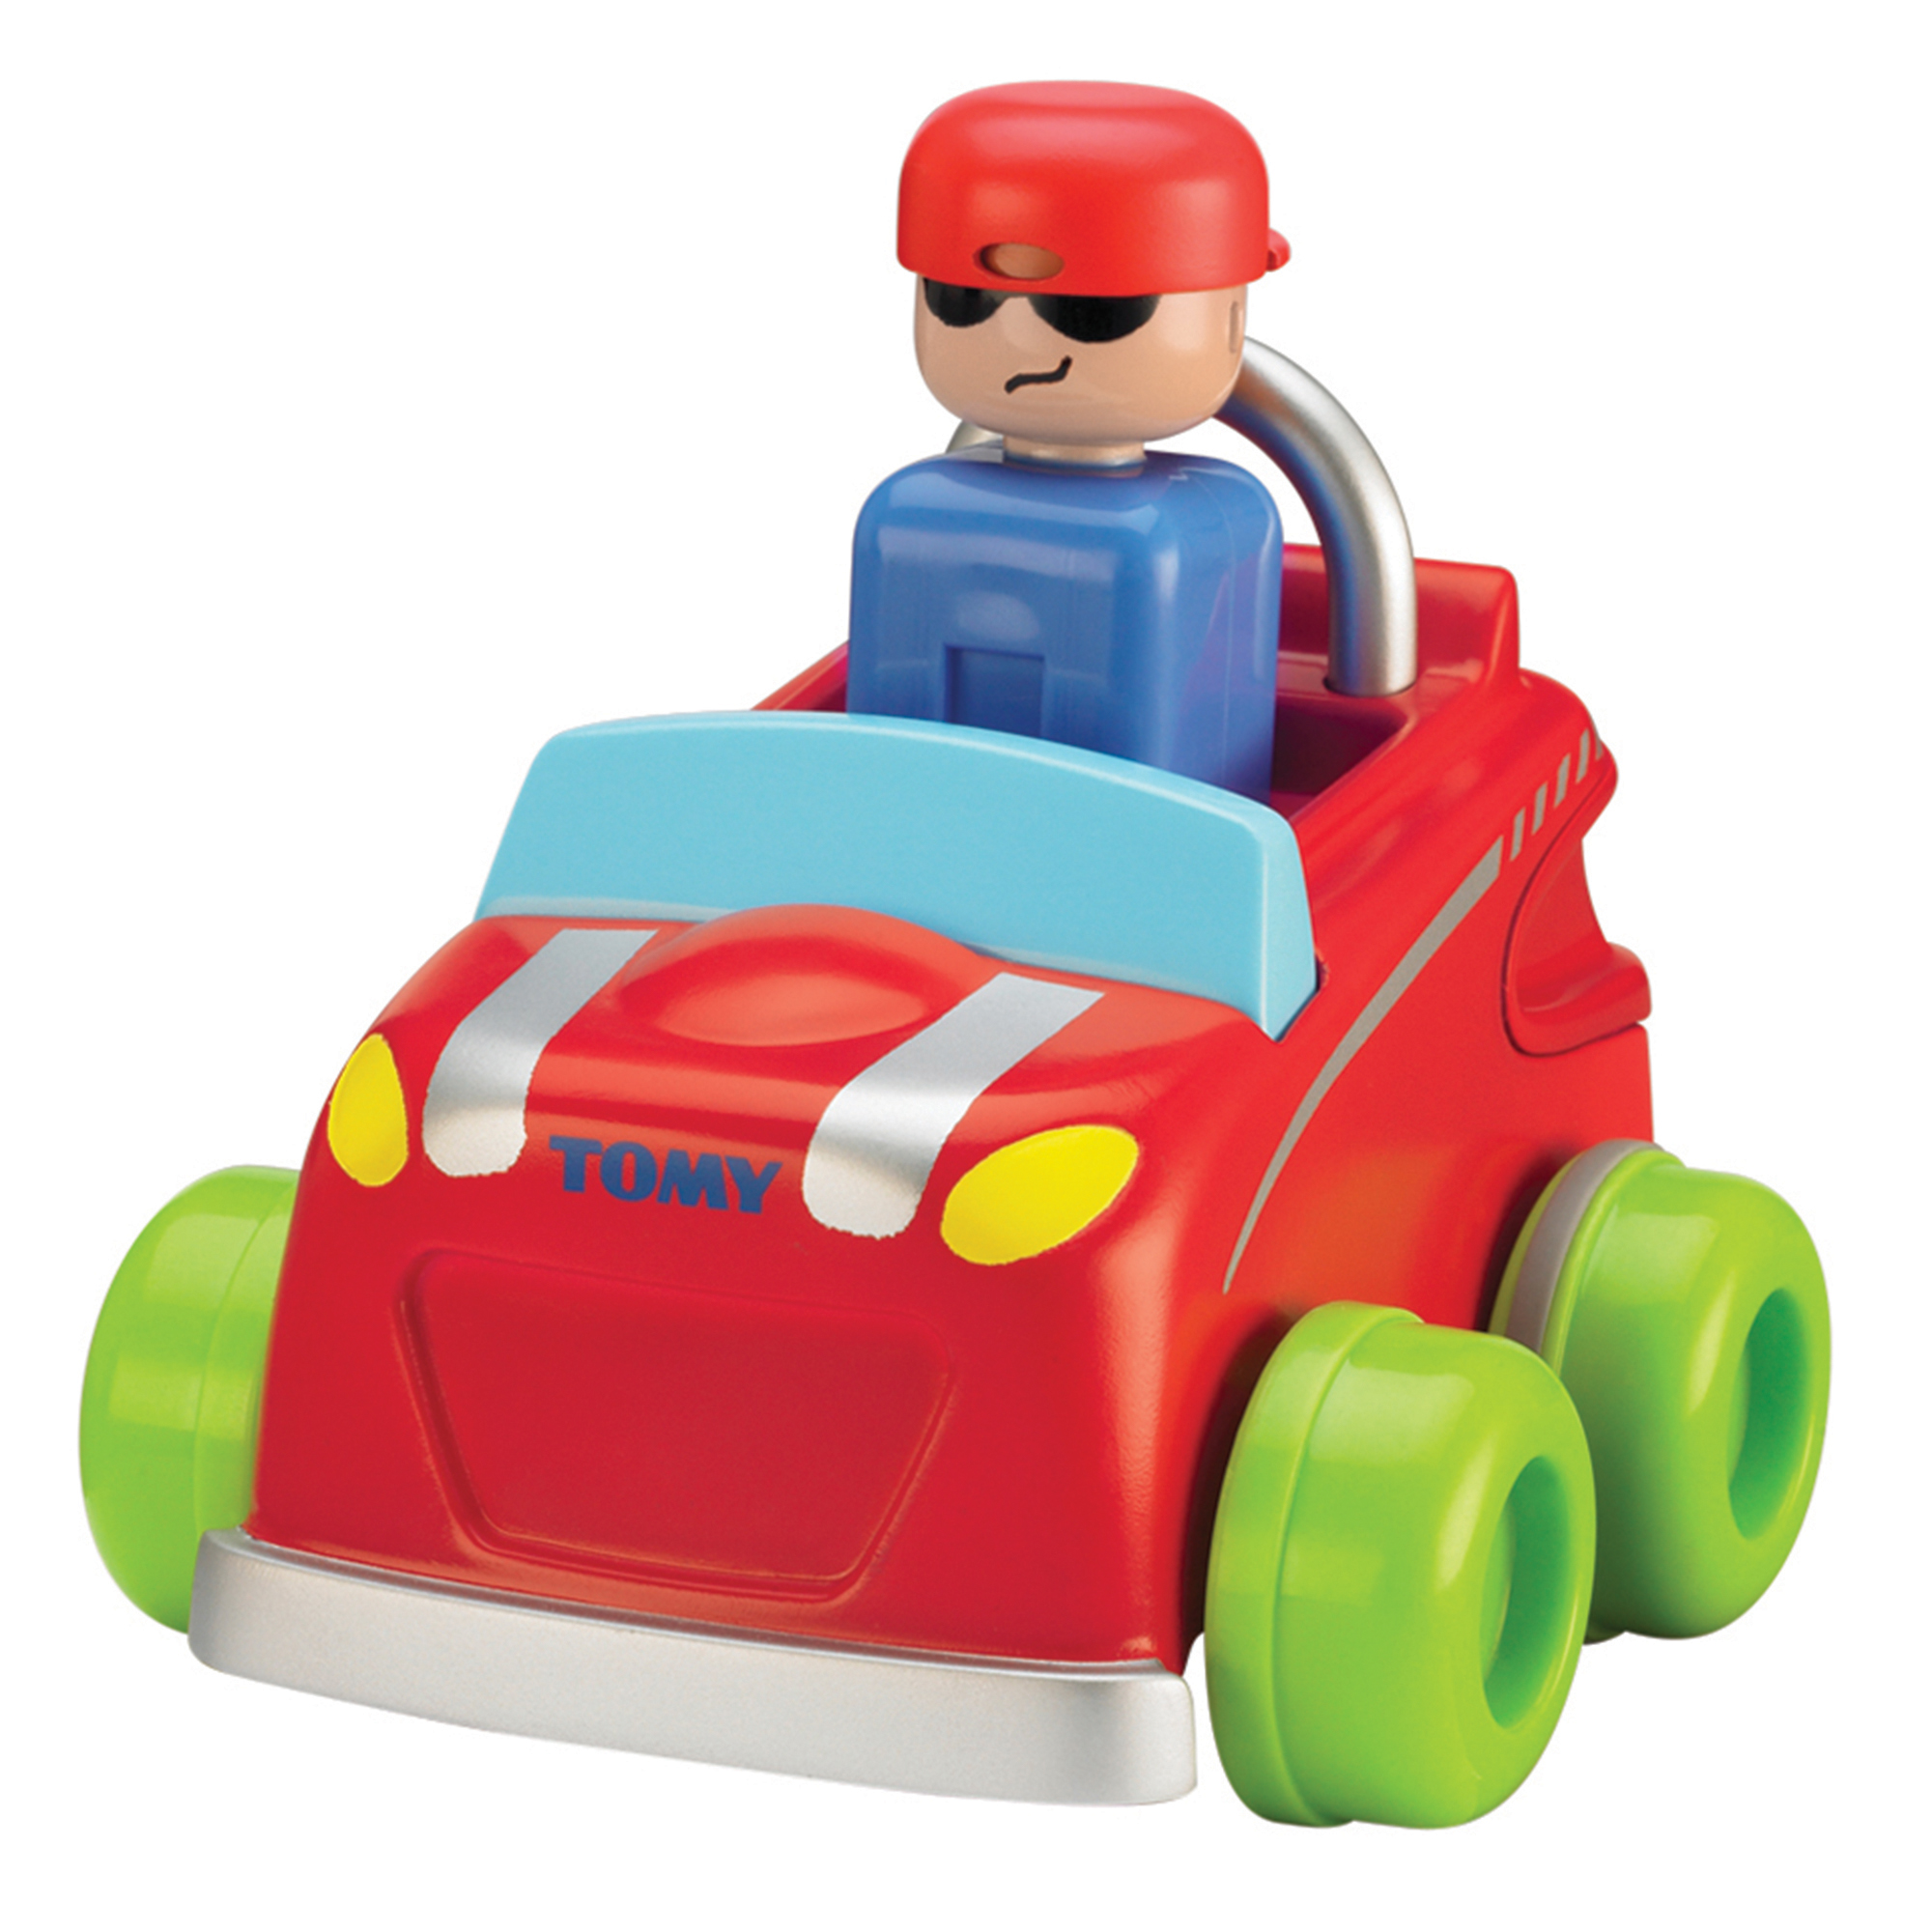 Tomy Push 'n Go Assortment